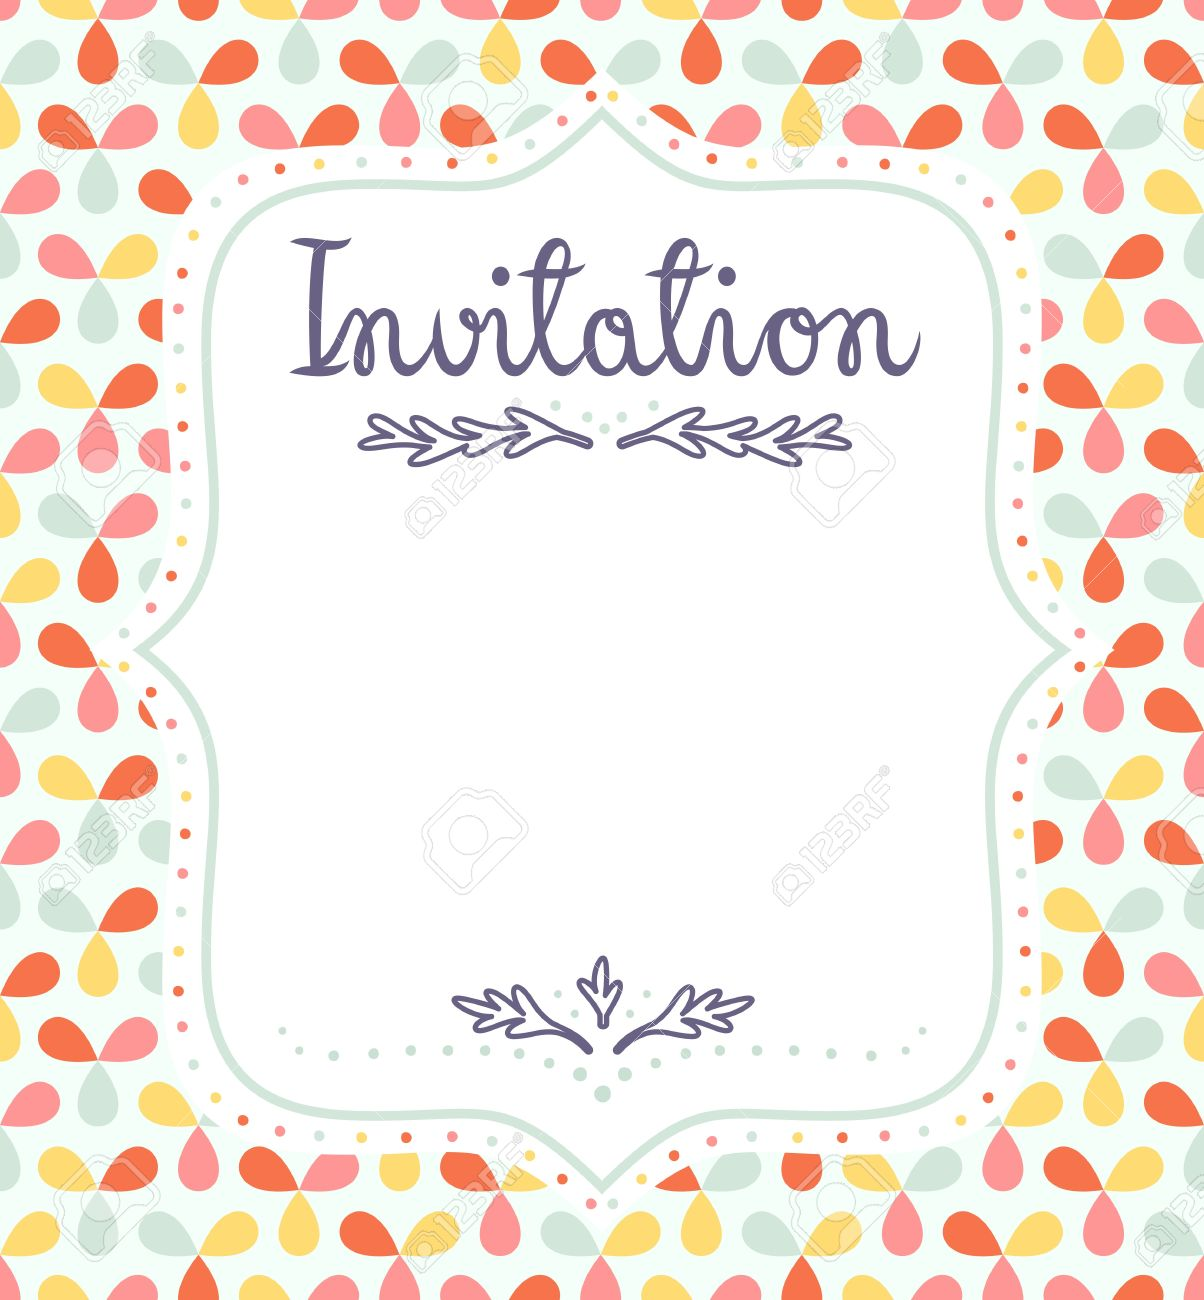 Cute Invitation Template For Festive Events Royalty Free Cliparts ...